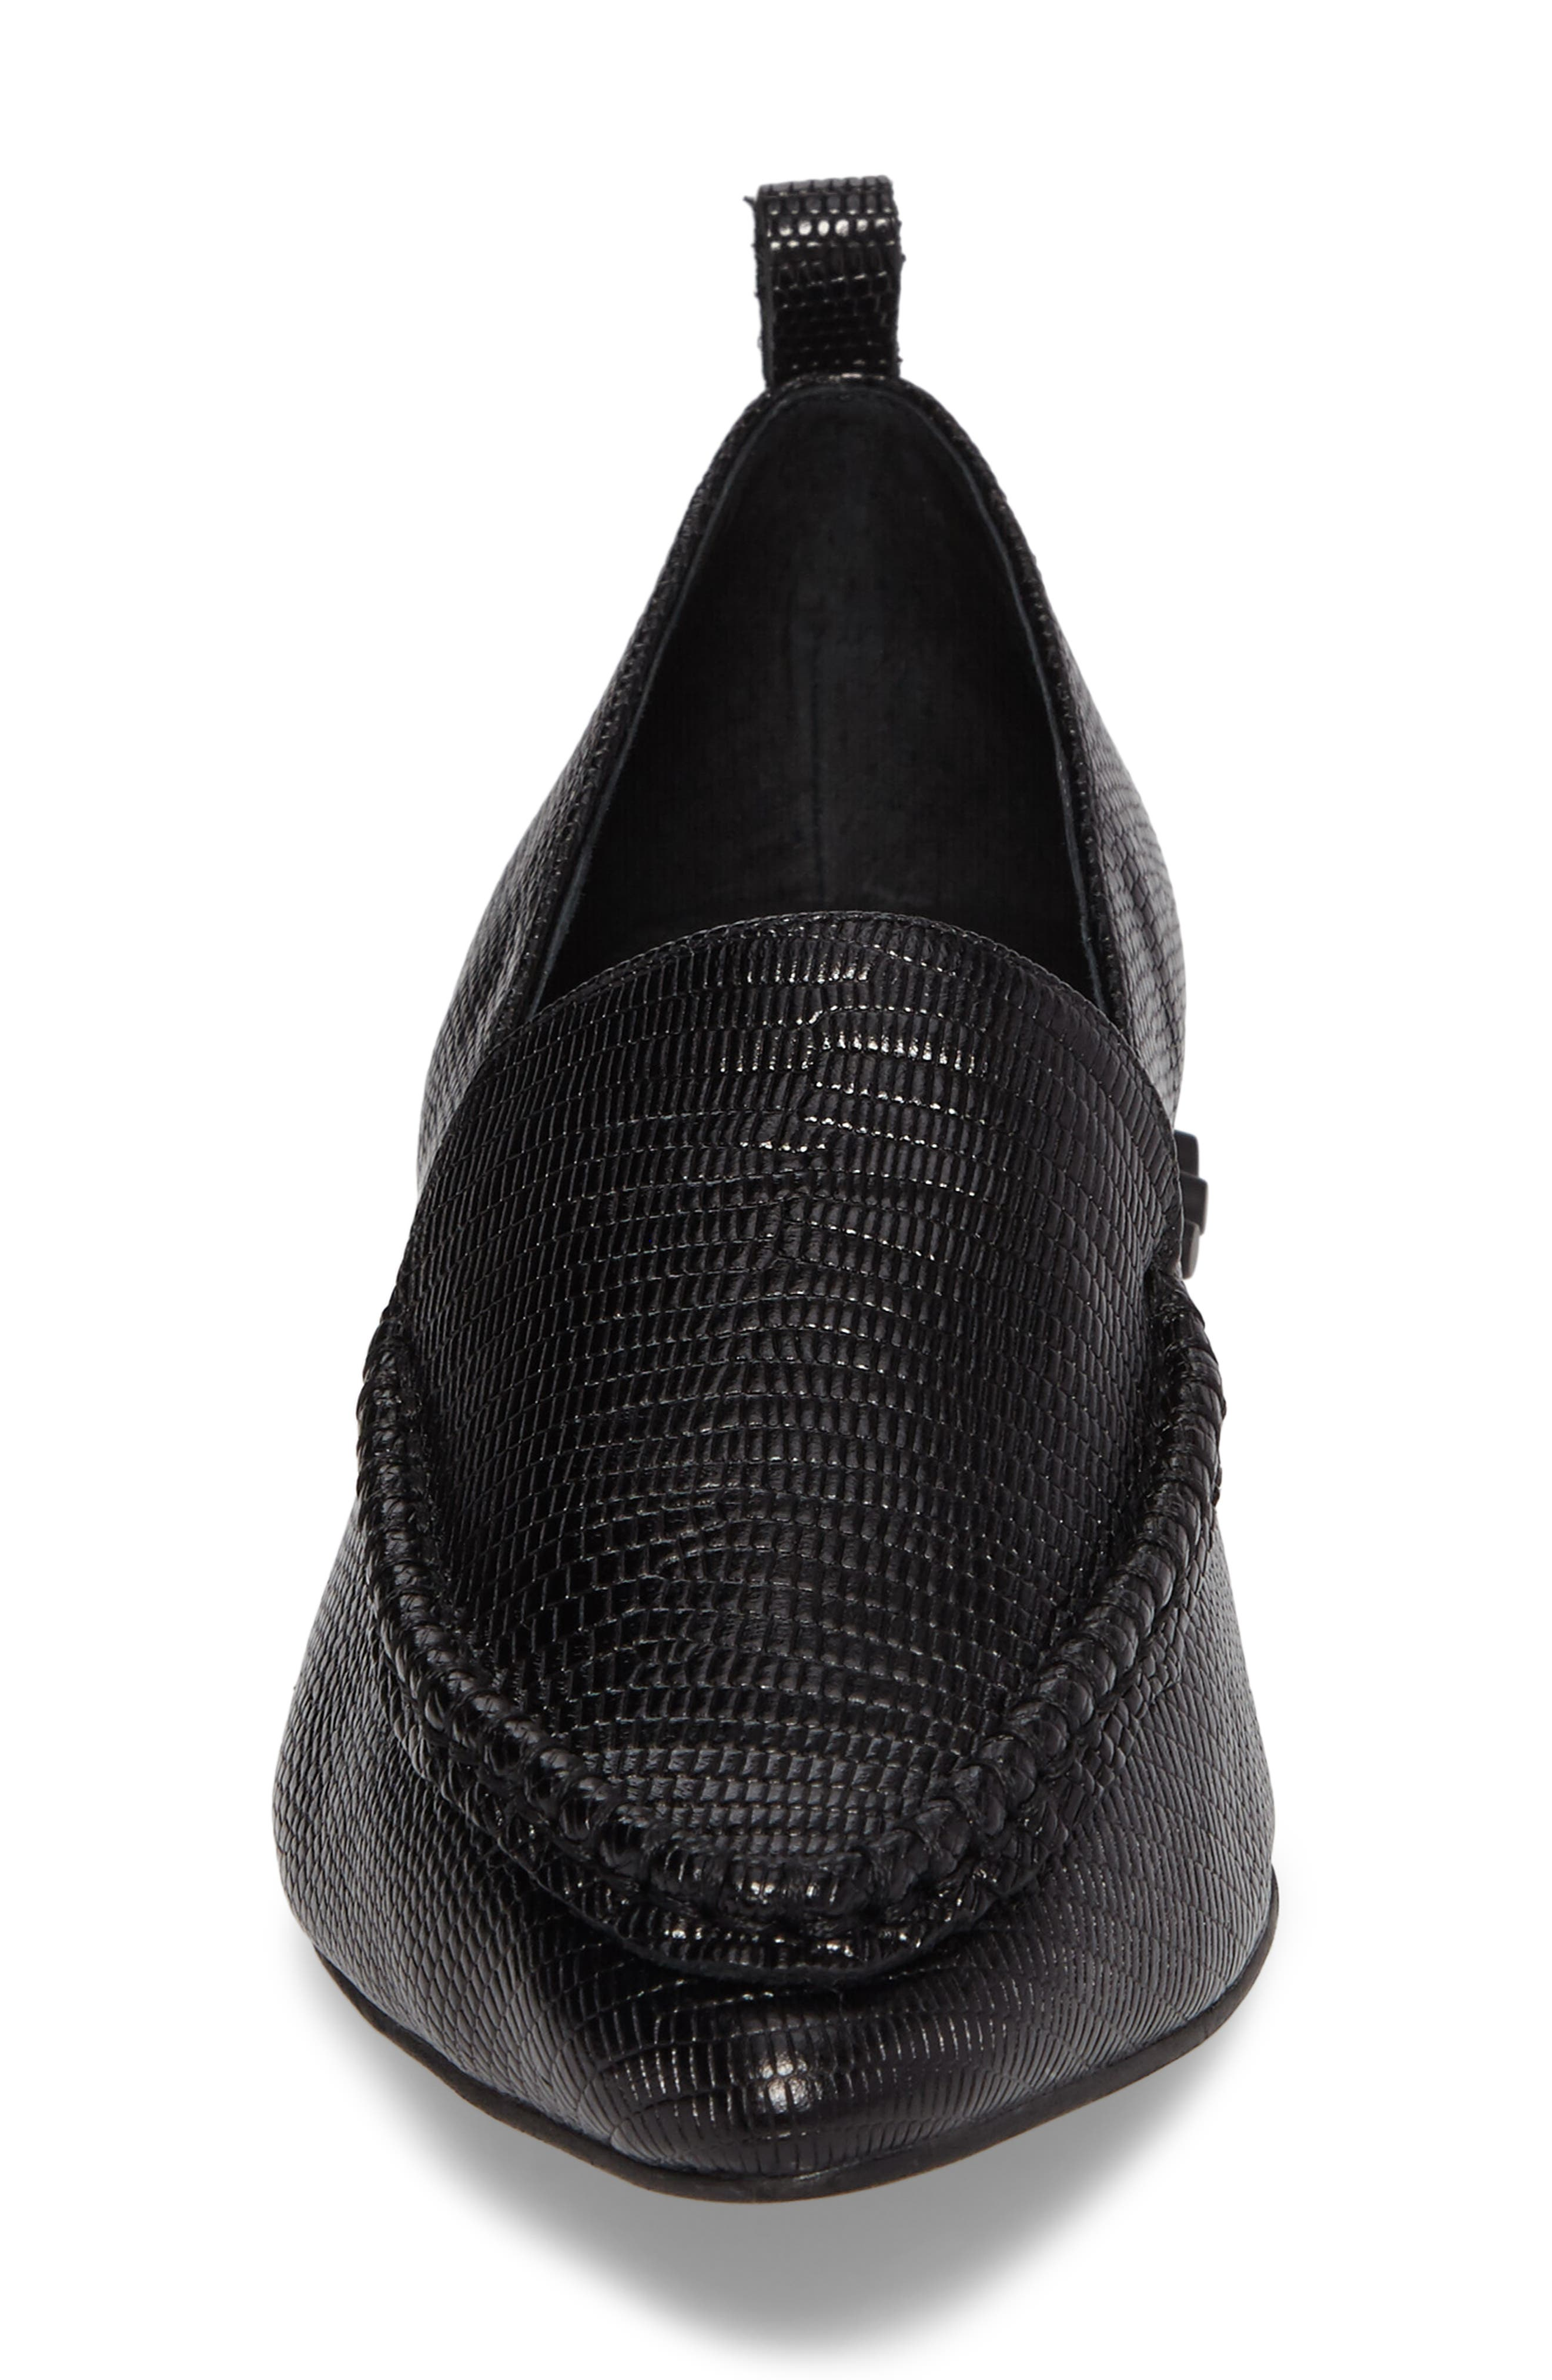 Barnett Studded Loafer,                             Alternate thumbnail 4, color,                             002